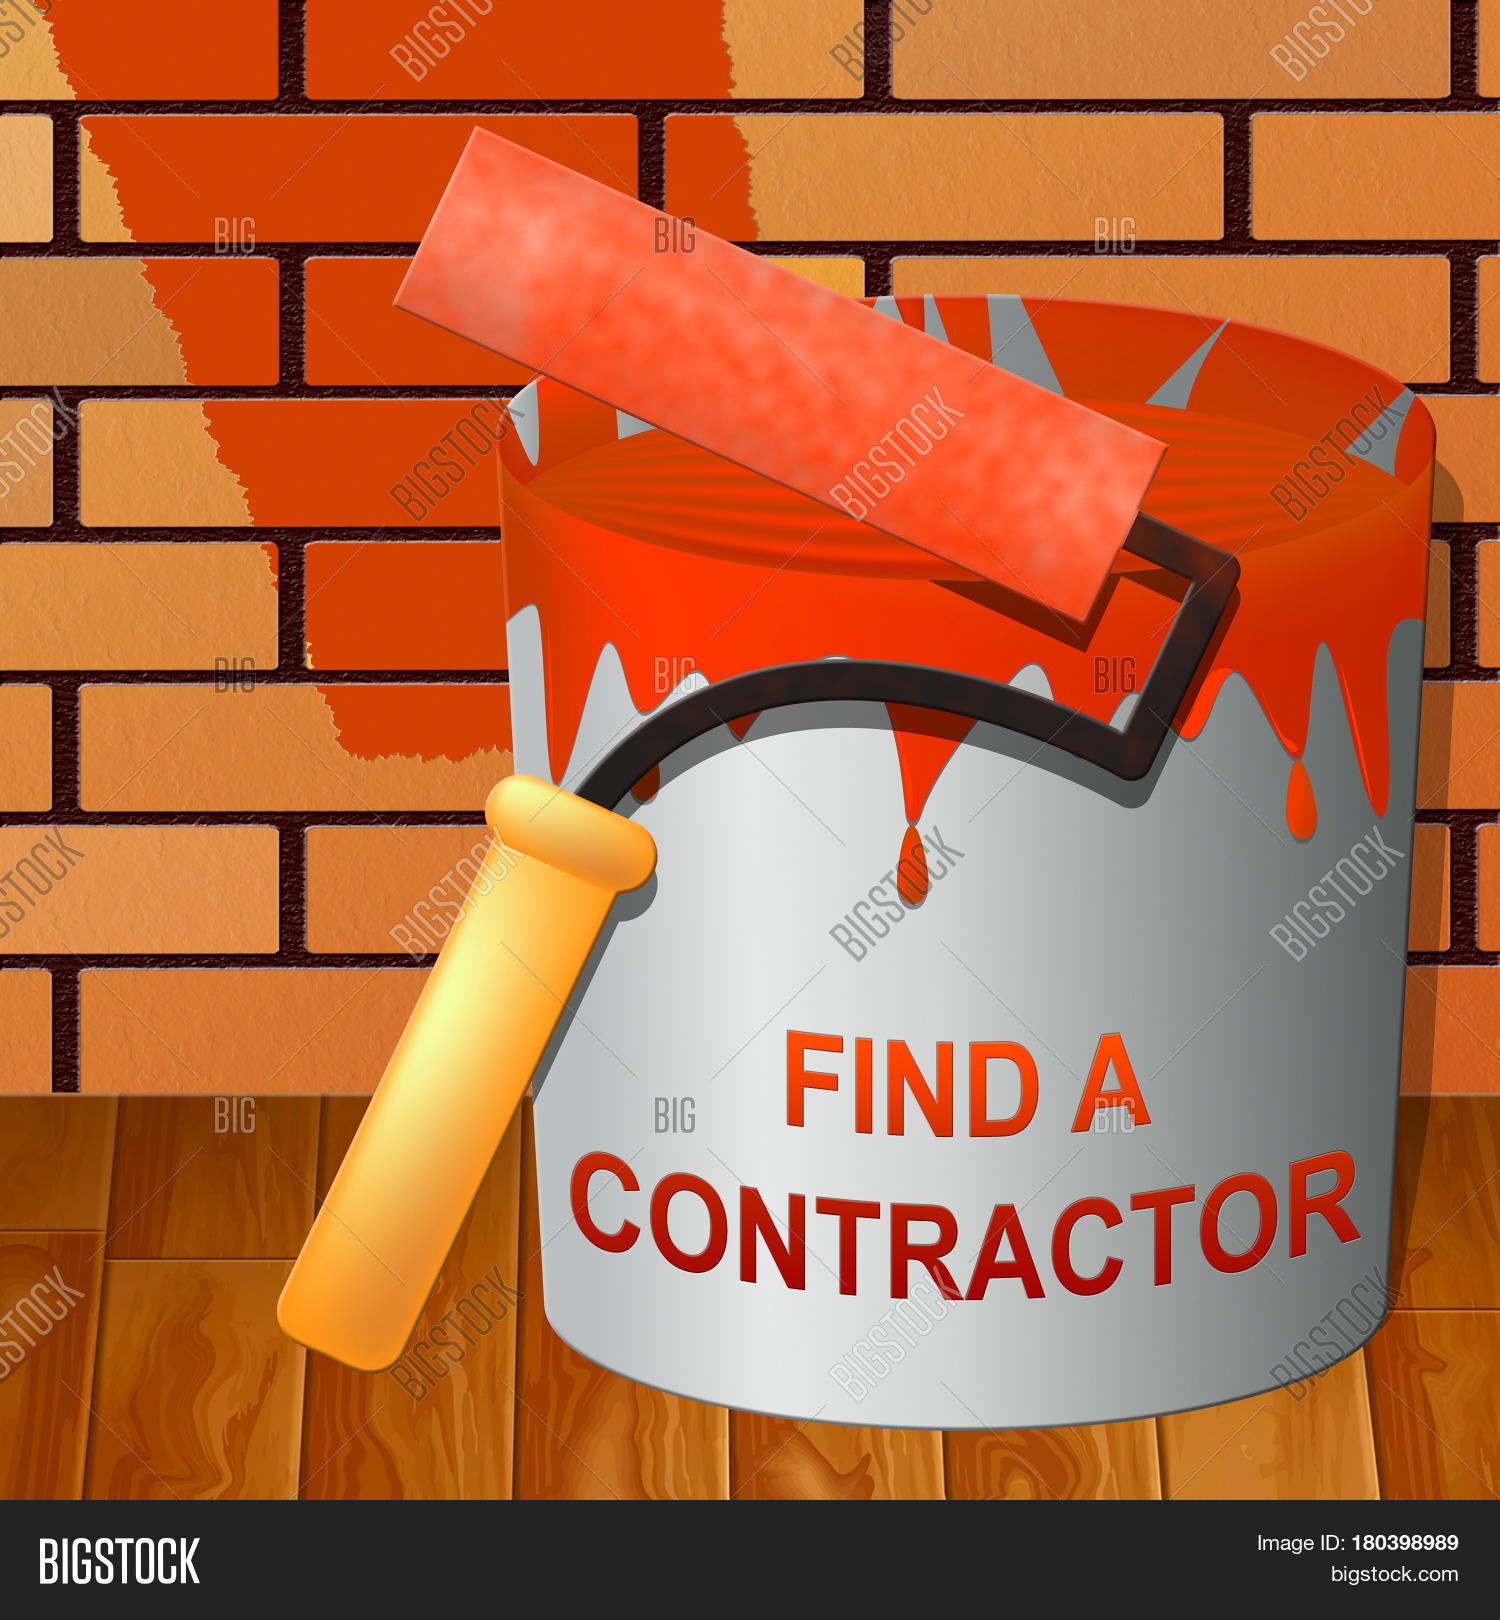 Find a contractor showing finding builder 3d illustration for Finding a builder